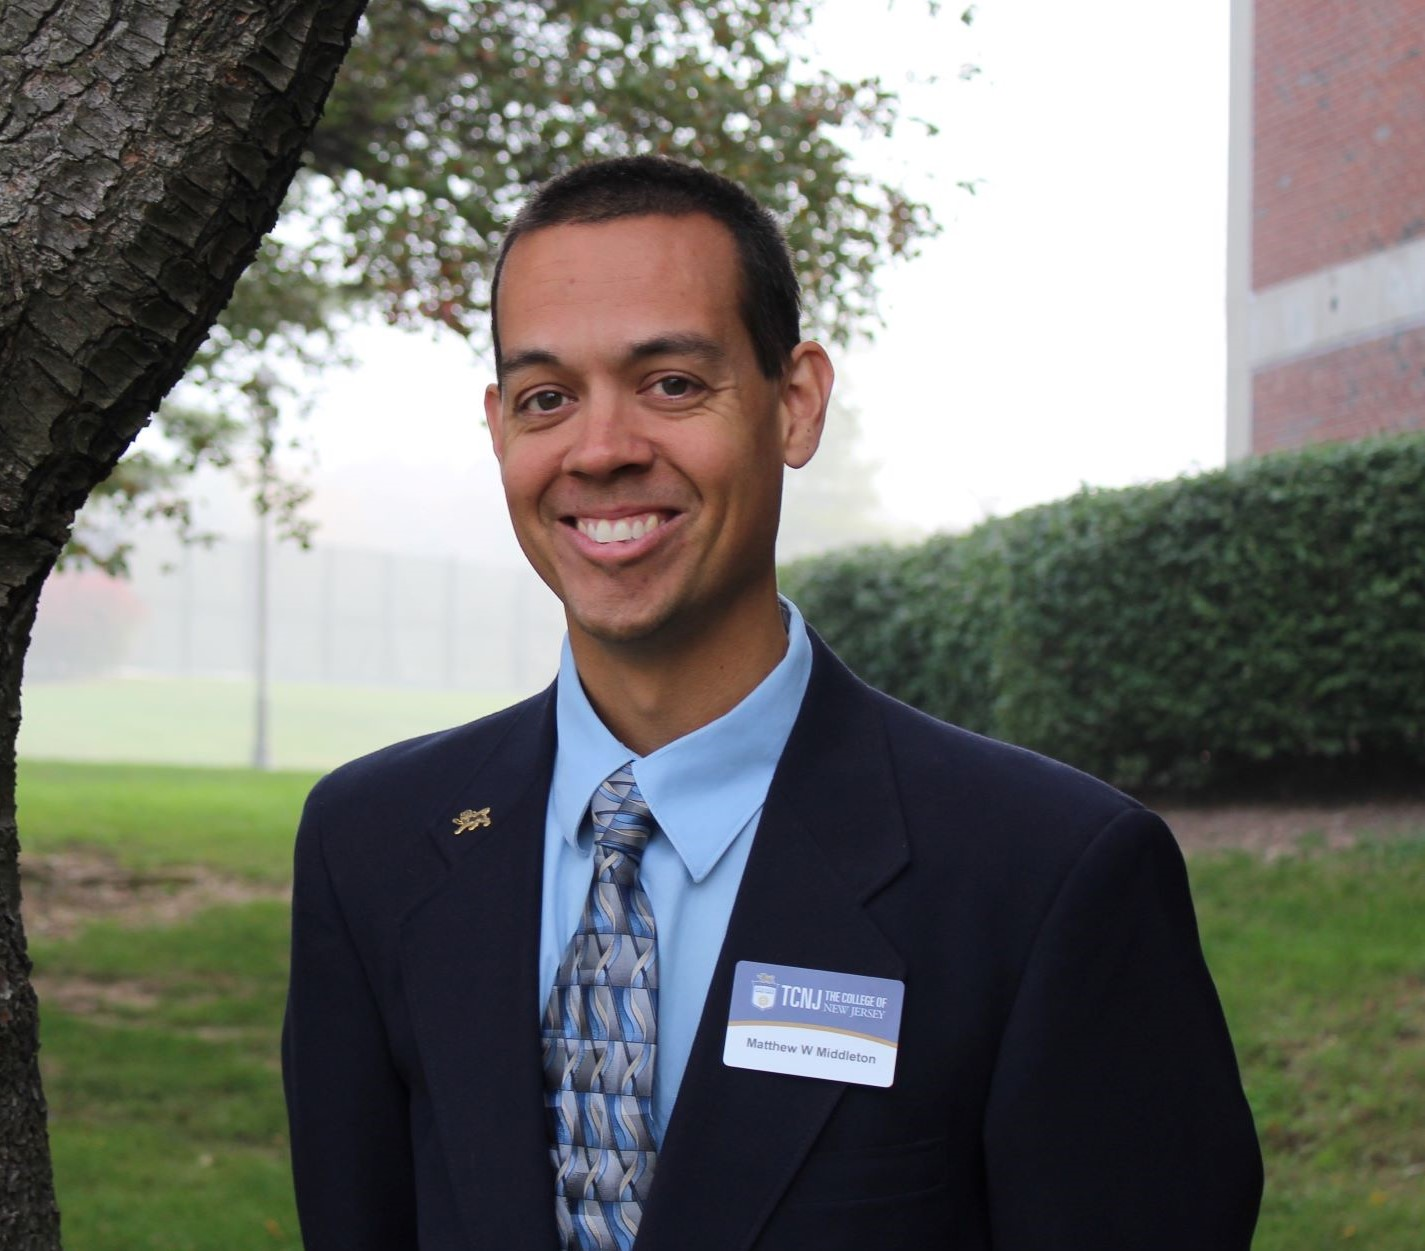 TCNJ Admissions Chat with Matt Middleton